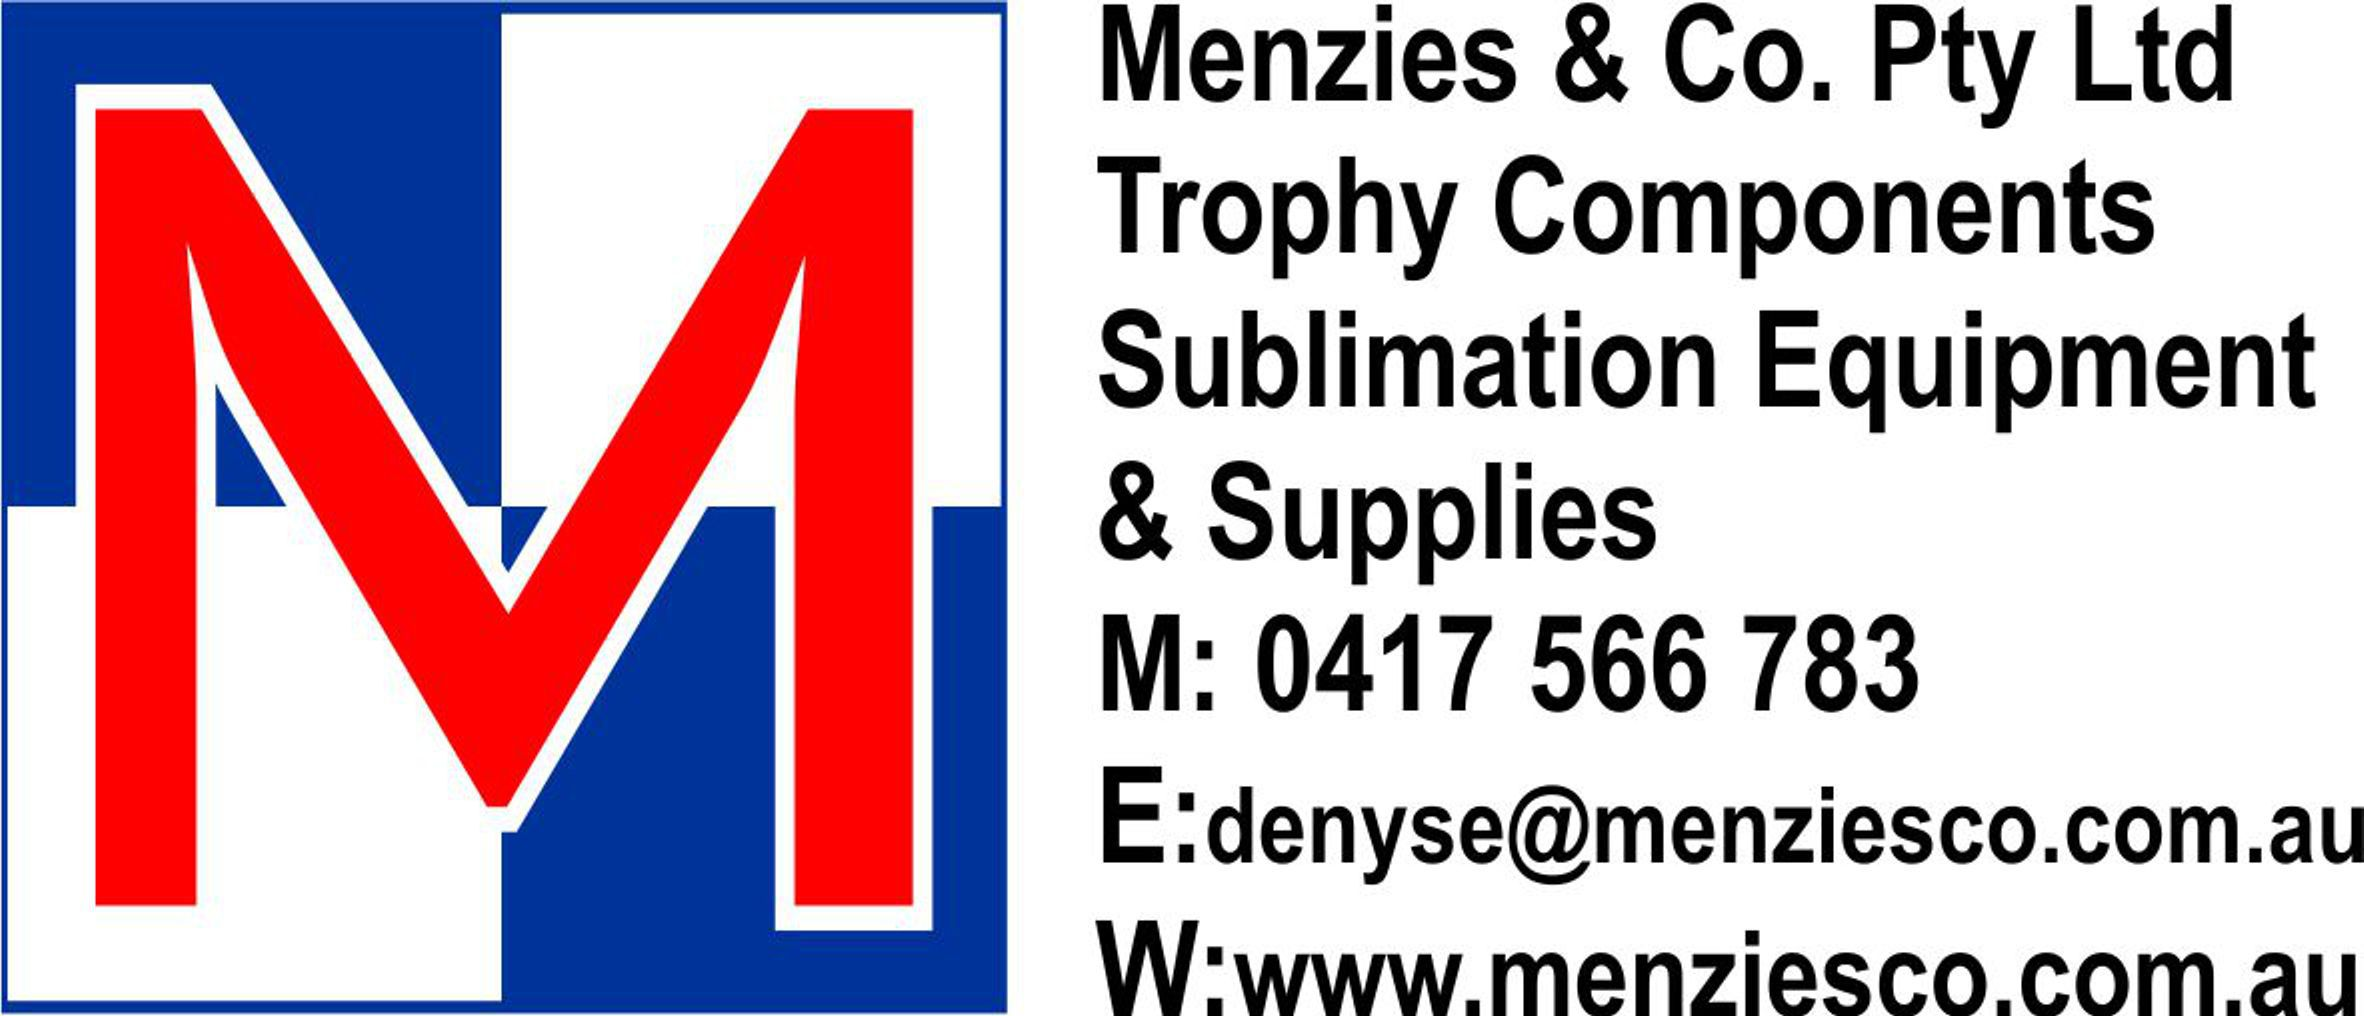 Menzies & Co Pty Ltd